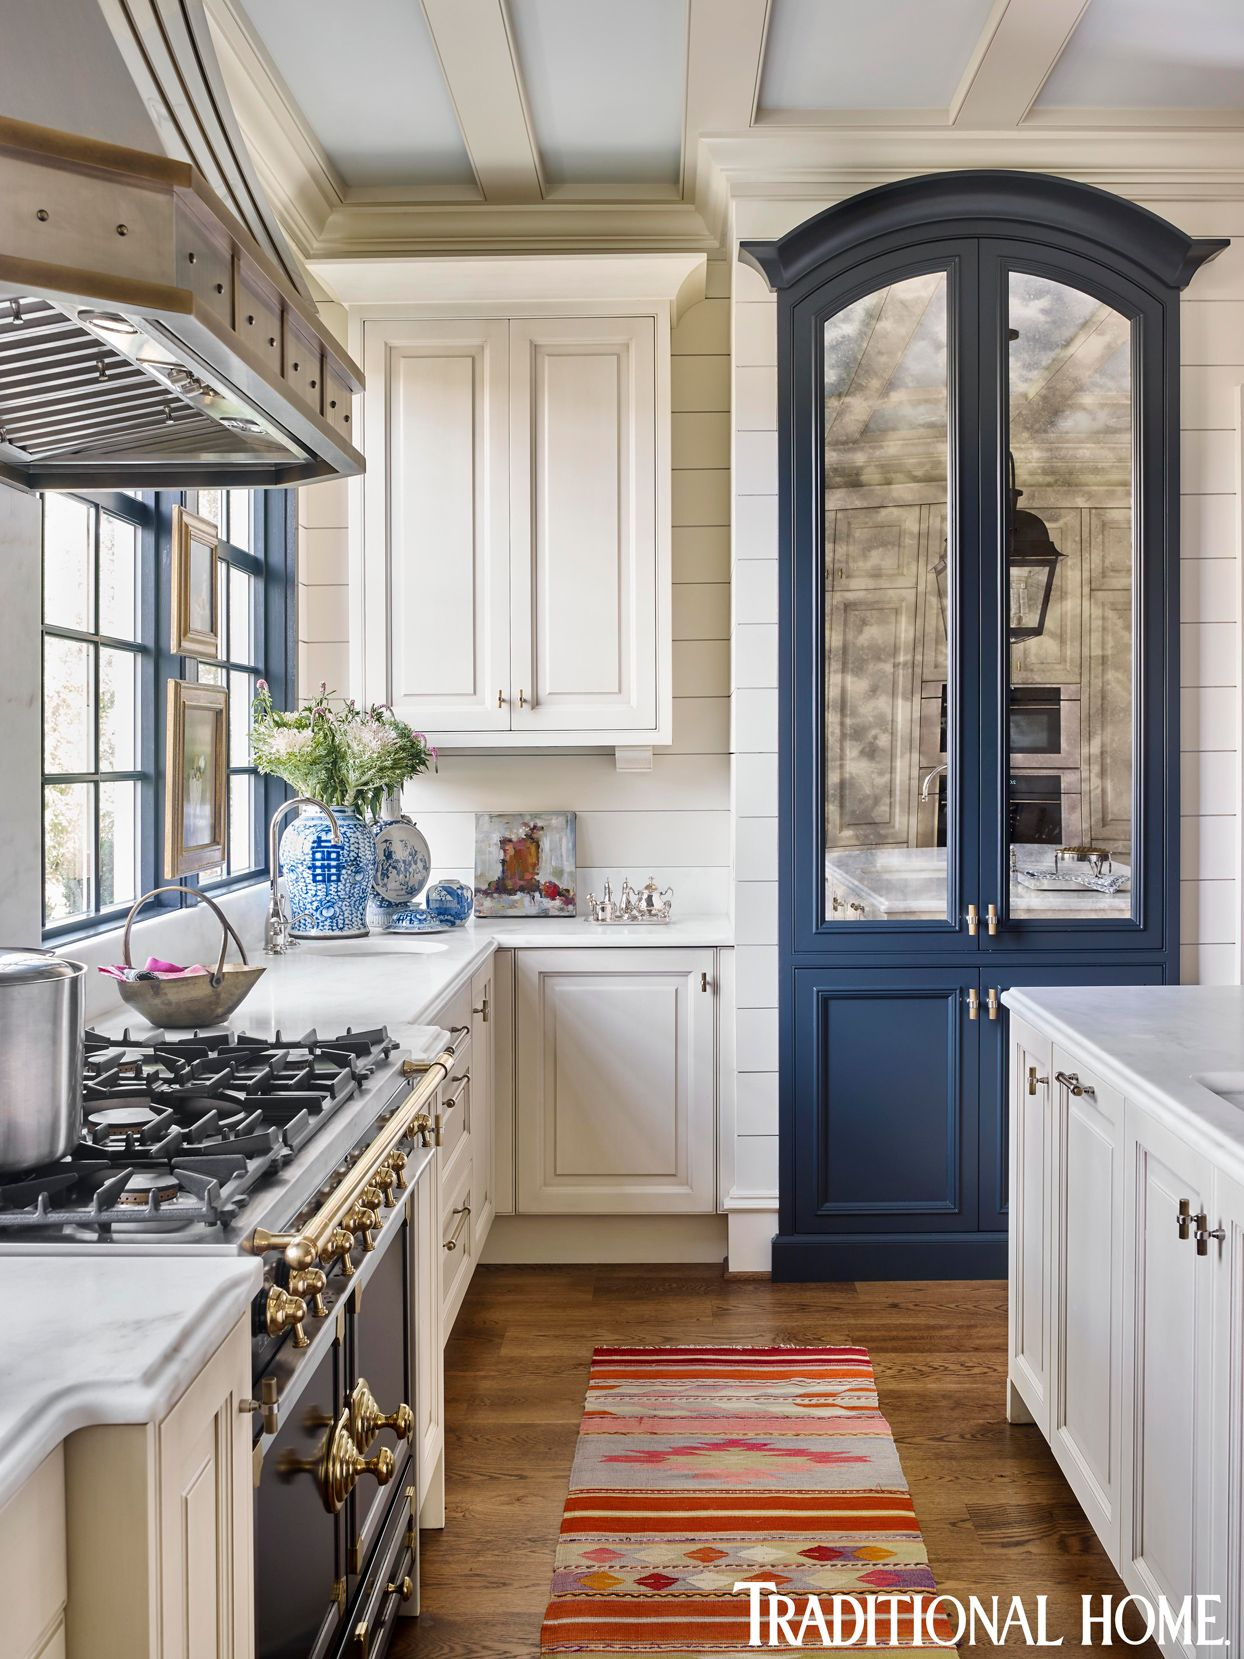 Modern Twists on the Traditional Kitchen